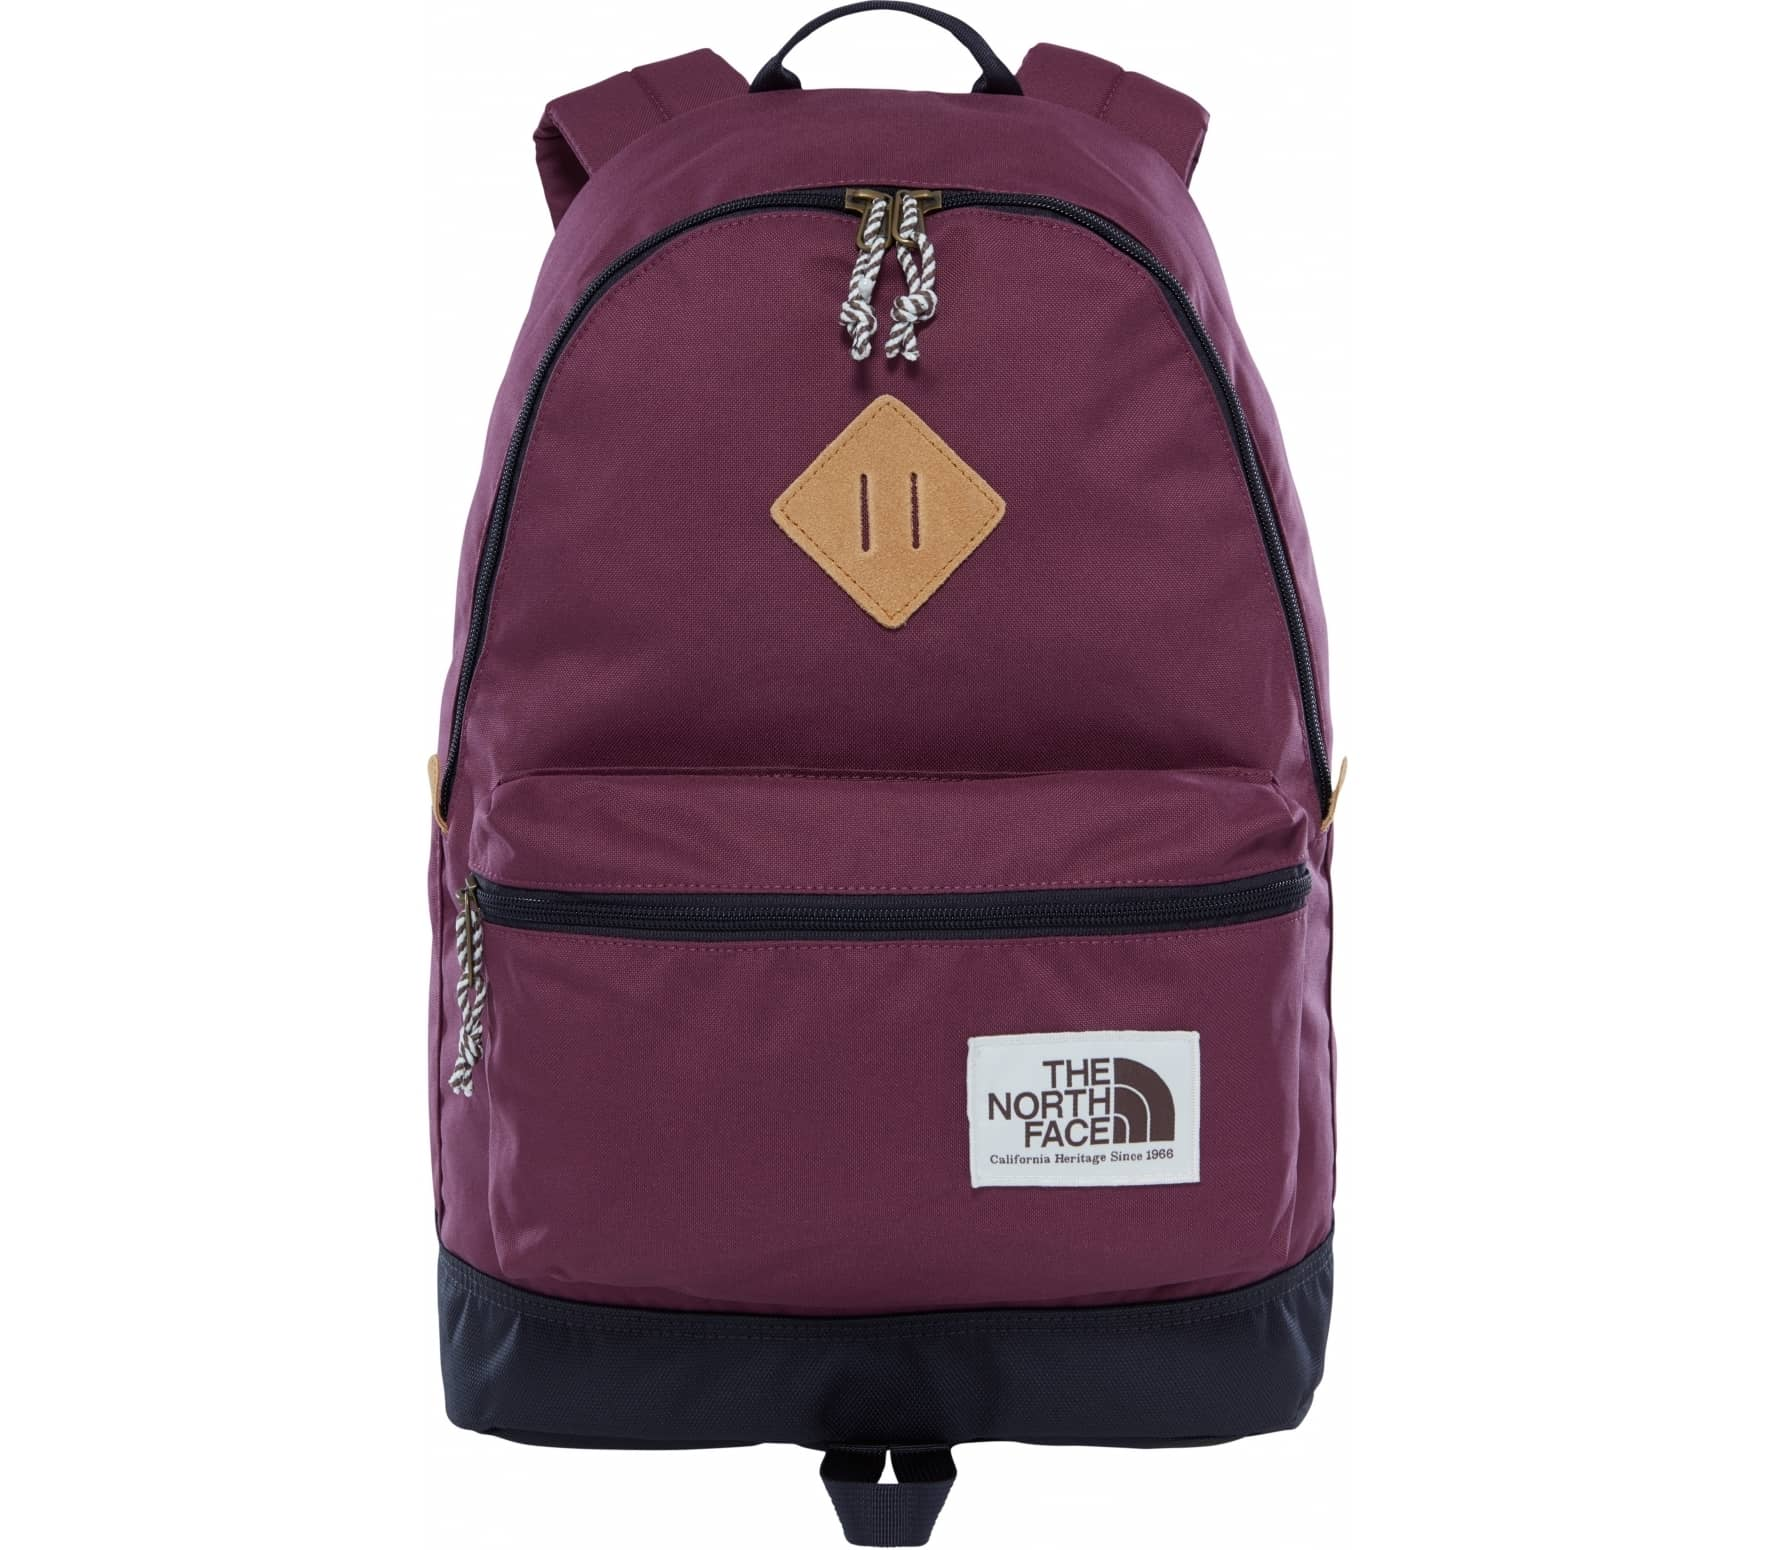 The North Face - Berkeley Daypack (lila/schwarz)